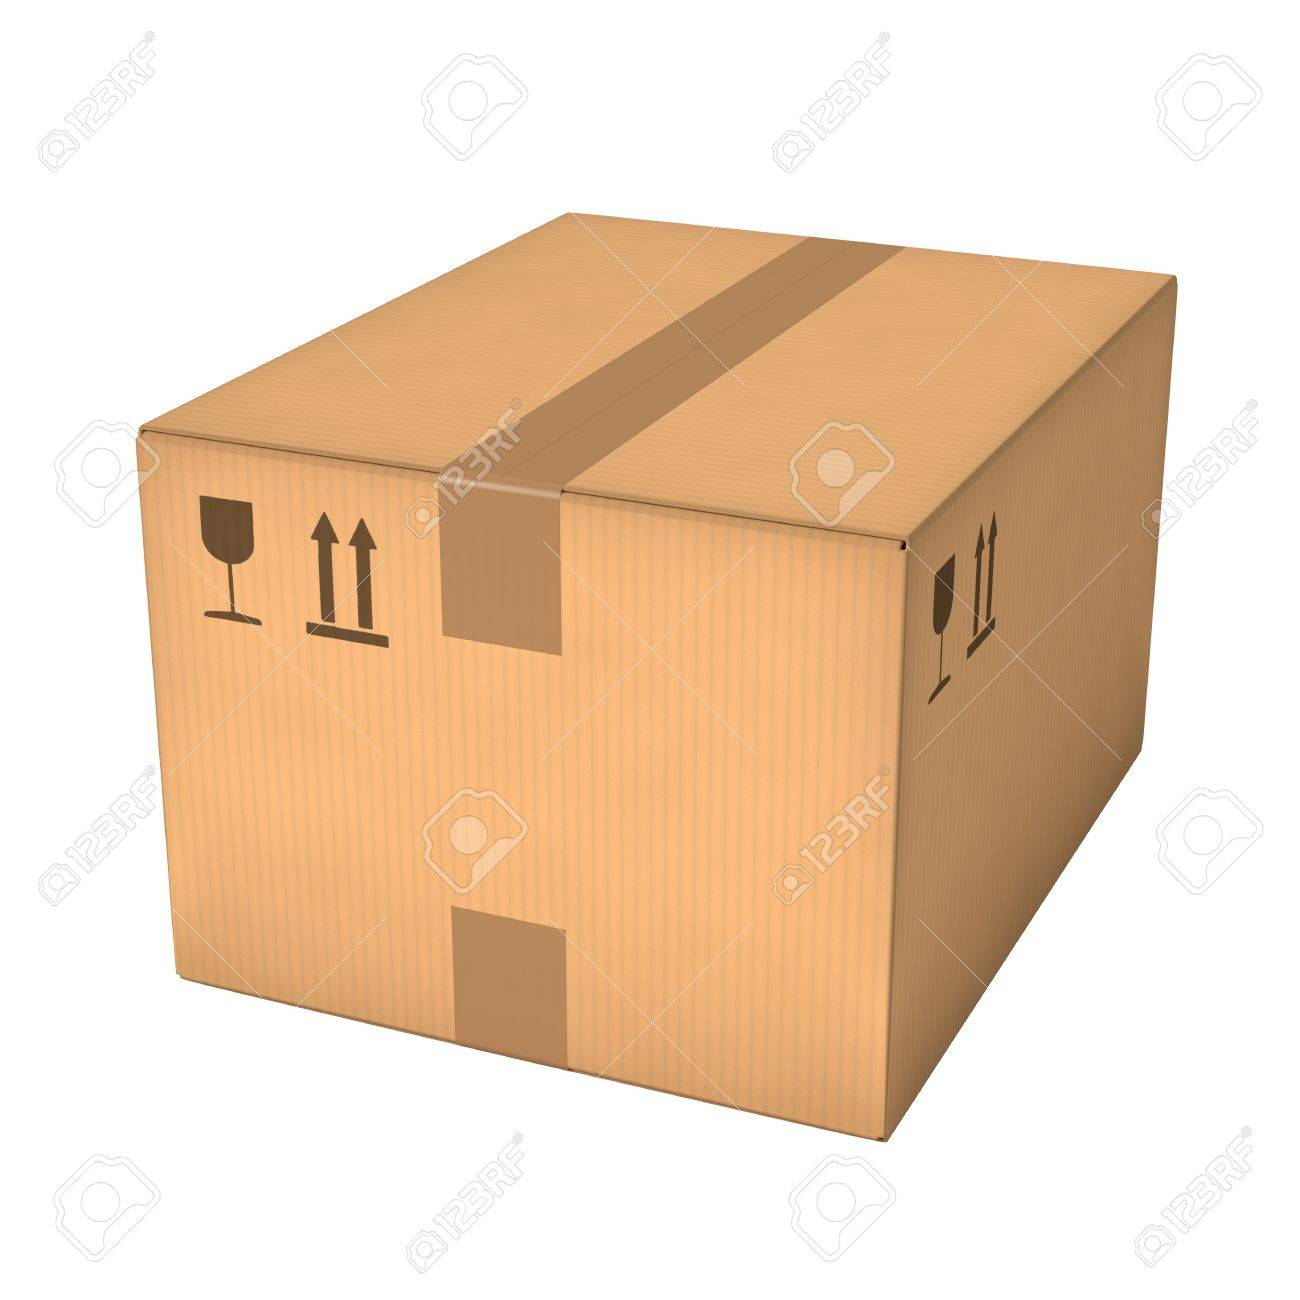 closed cardboard box. closed cardboard box isolated on white background retail logistics delivery and storage concept